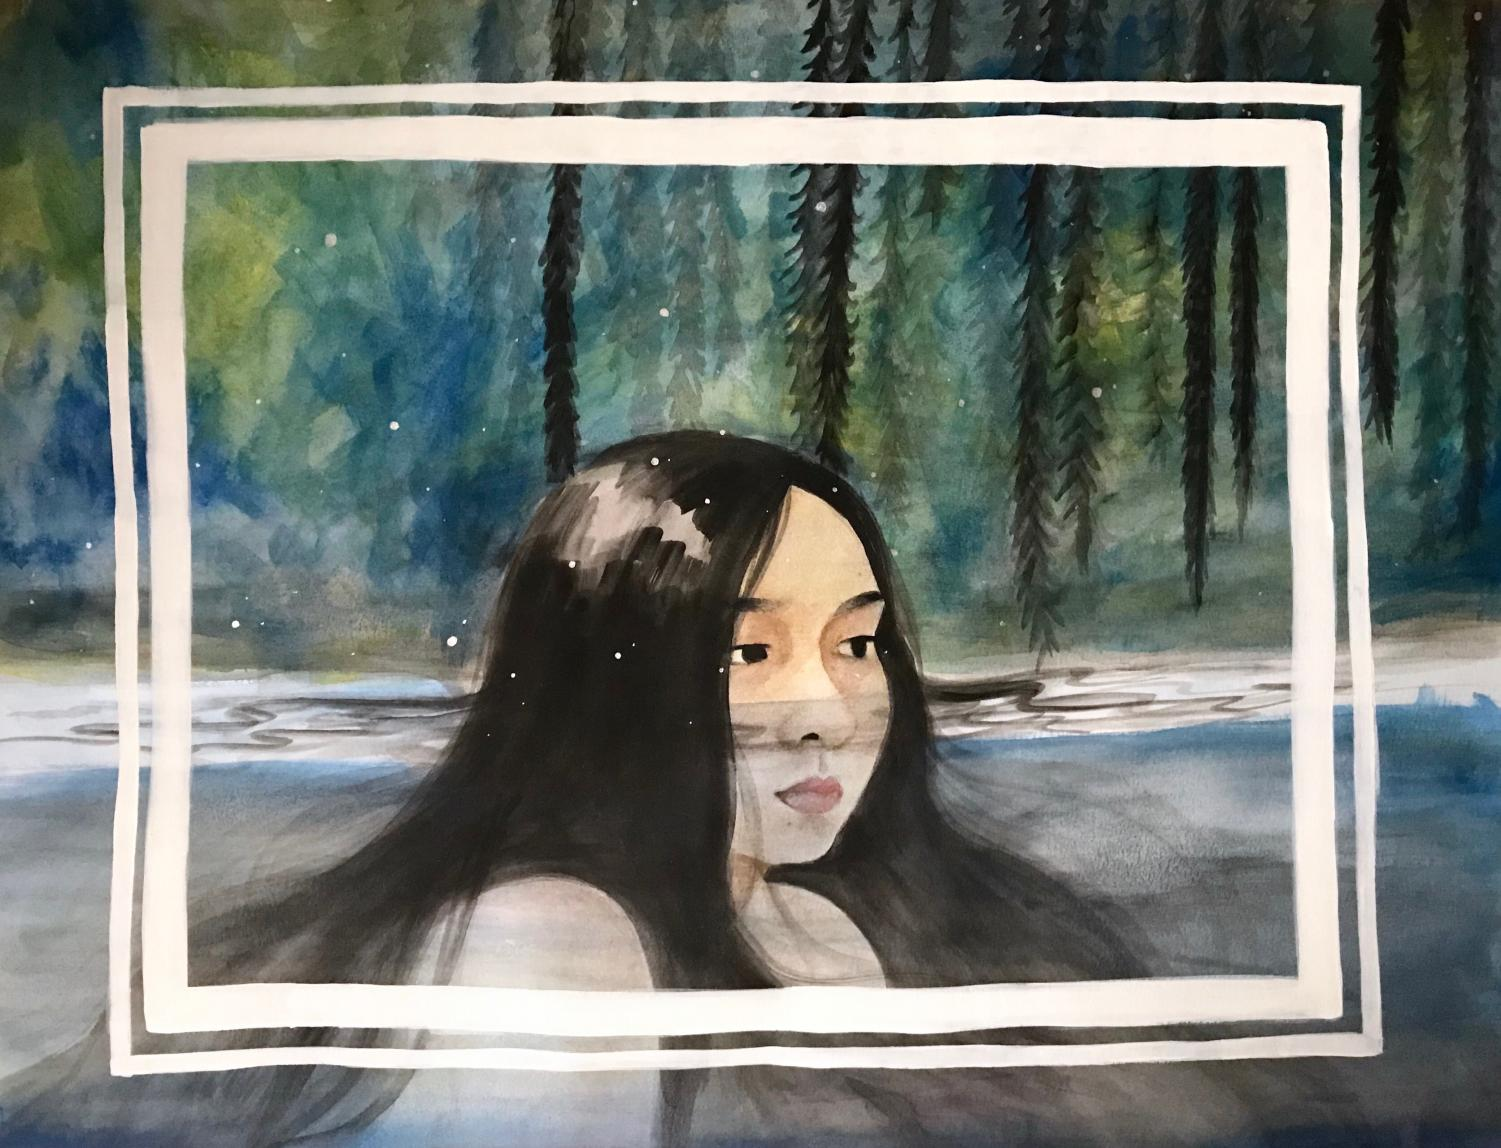 A self-portrait painted by Micaela Espedido. Photo courtesy of Micaela Espedido.